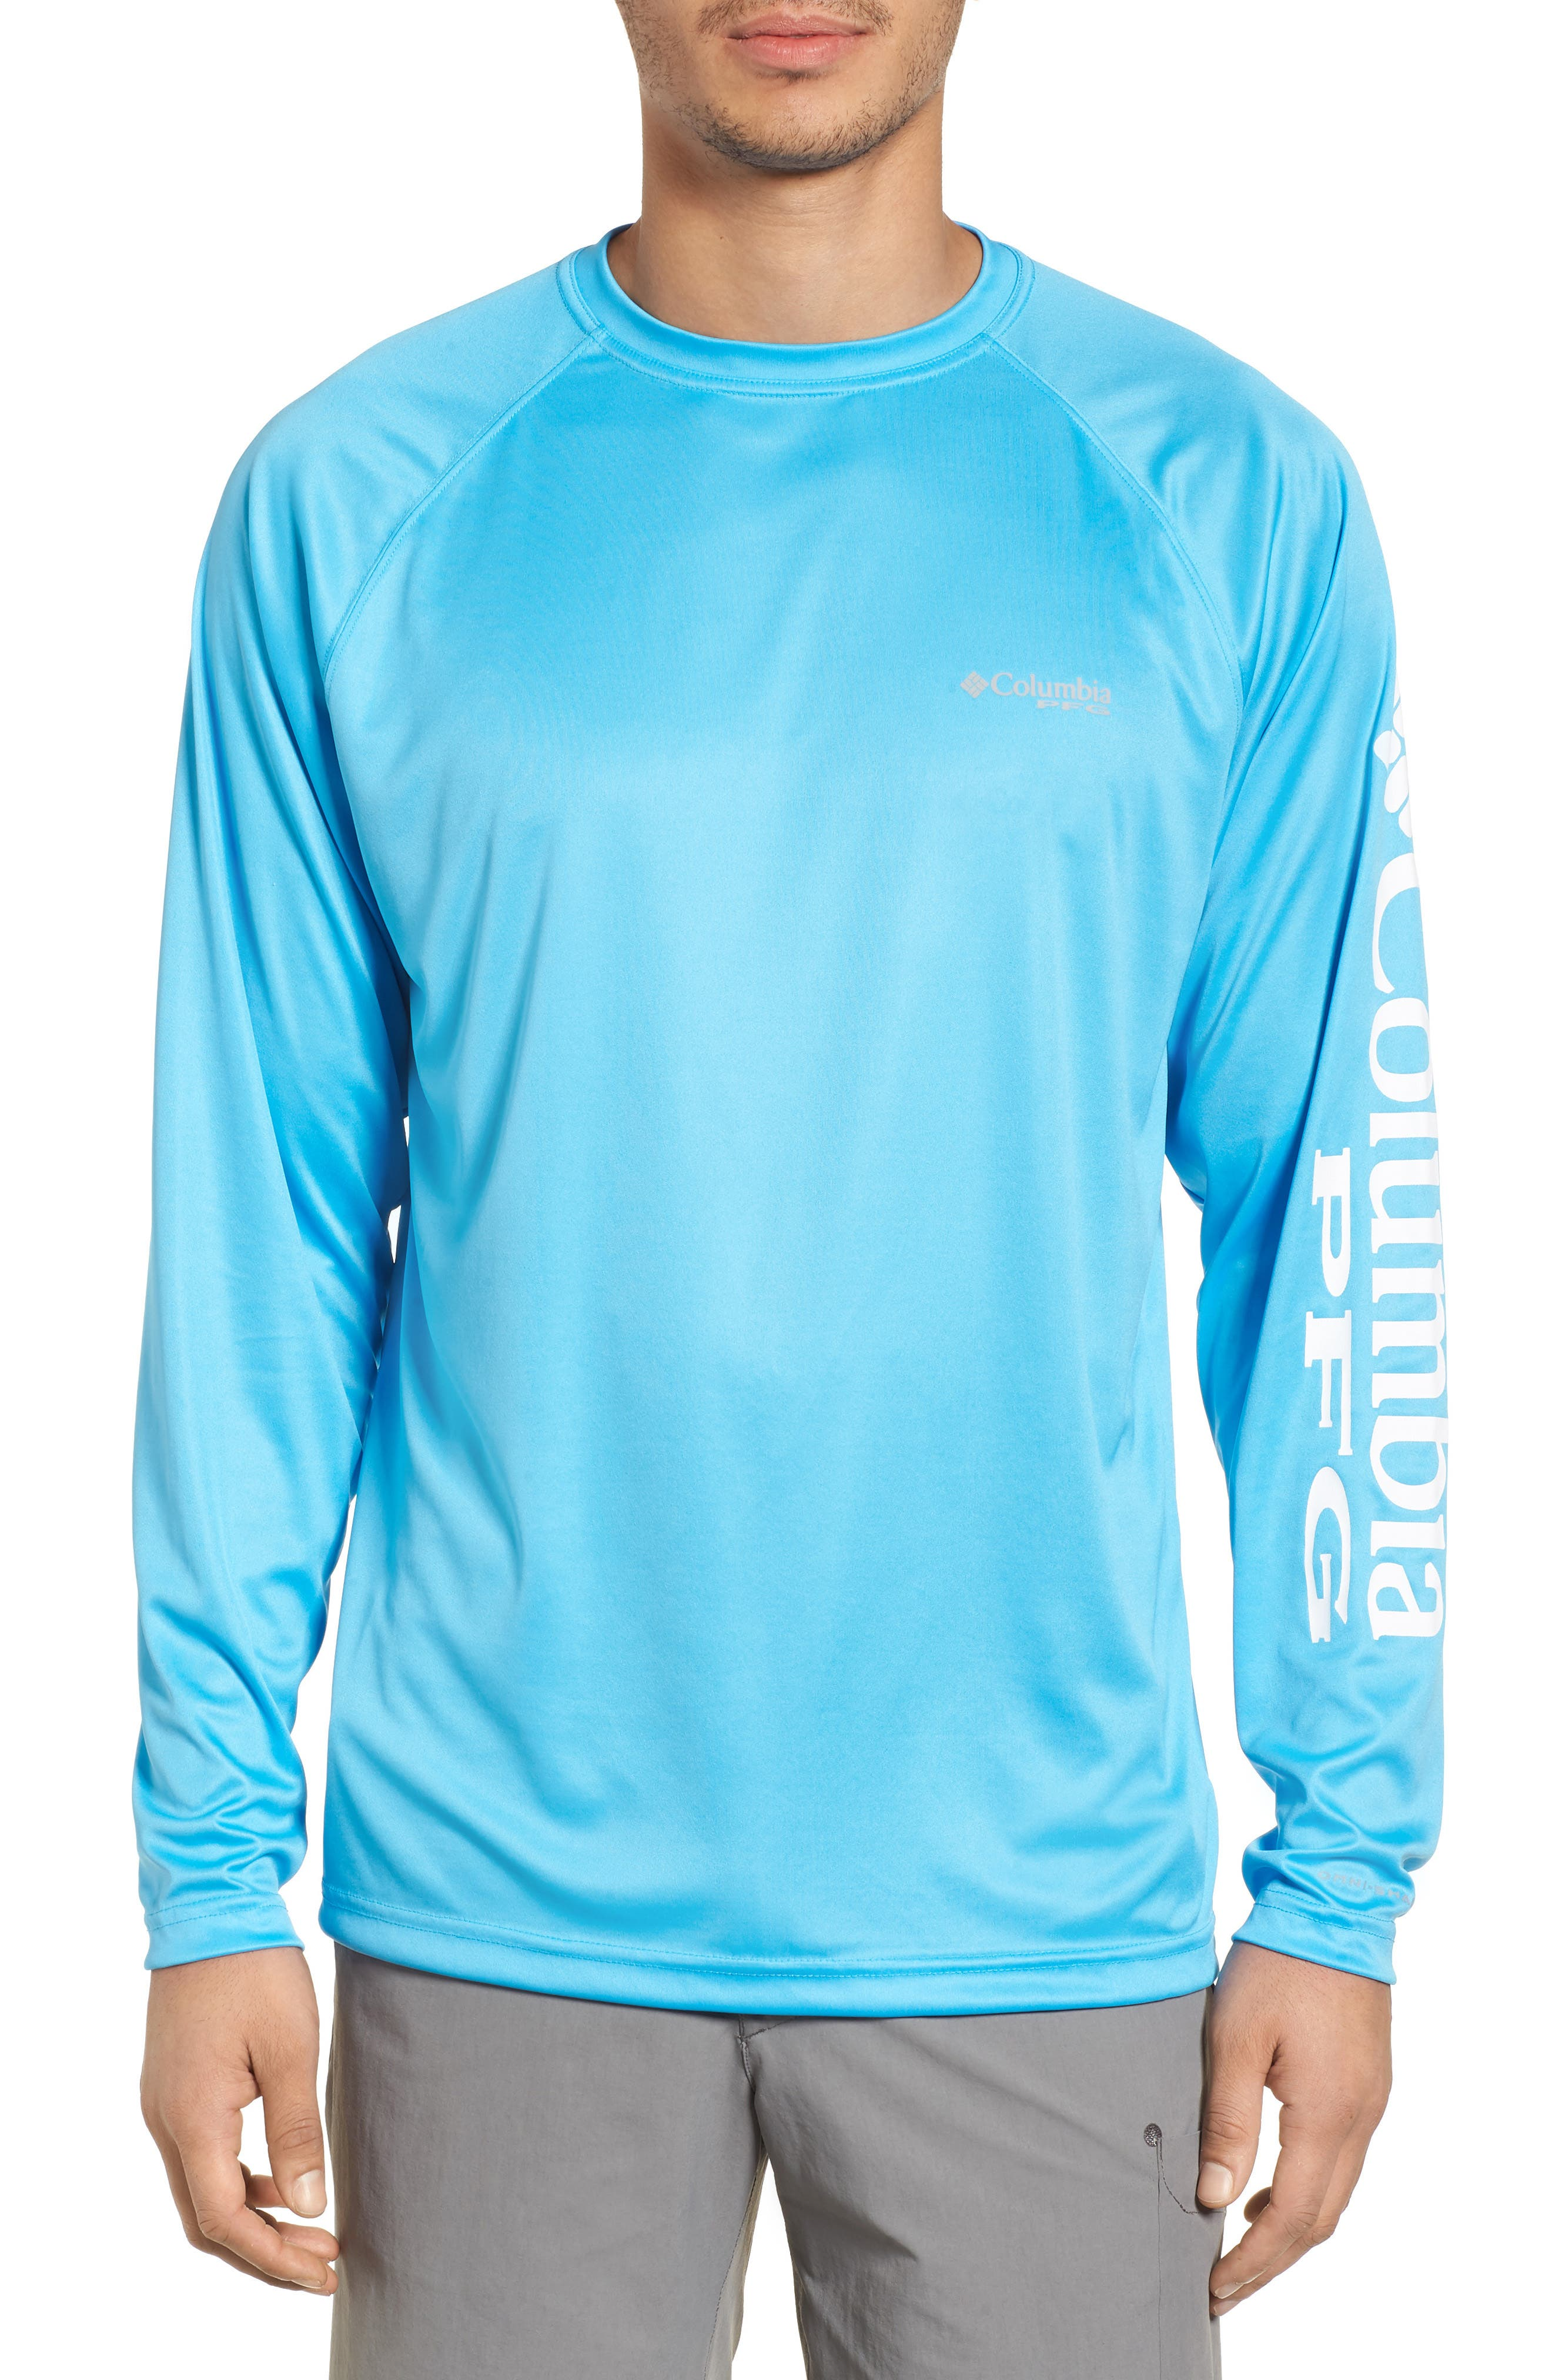 Alternate Image 1 Selected - Columbia PFG Terminal Tackle Performance Long Sleeve T-Shirt